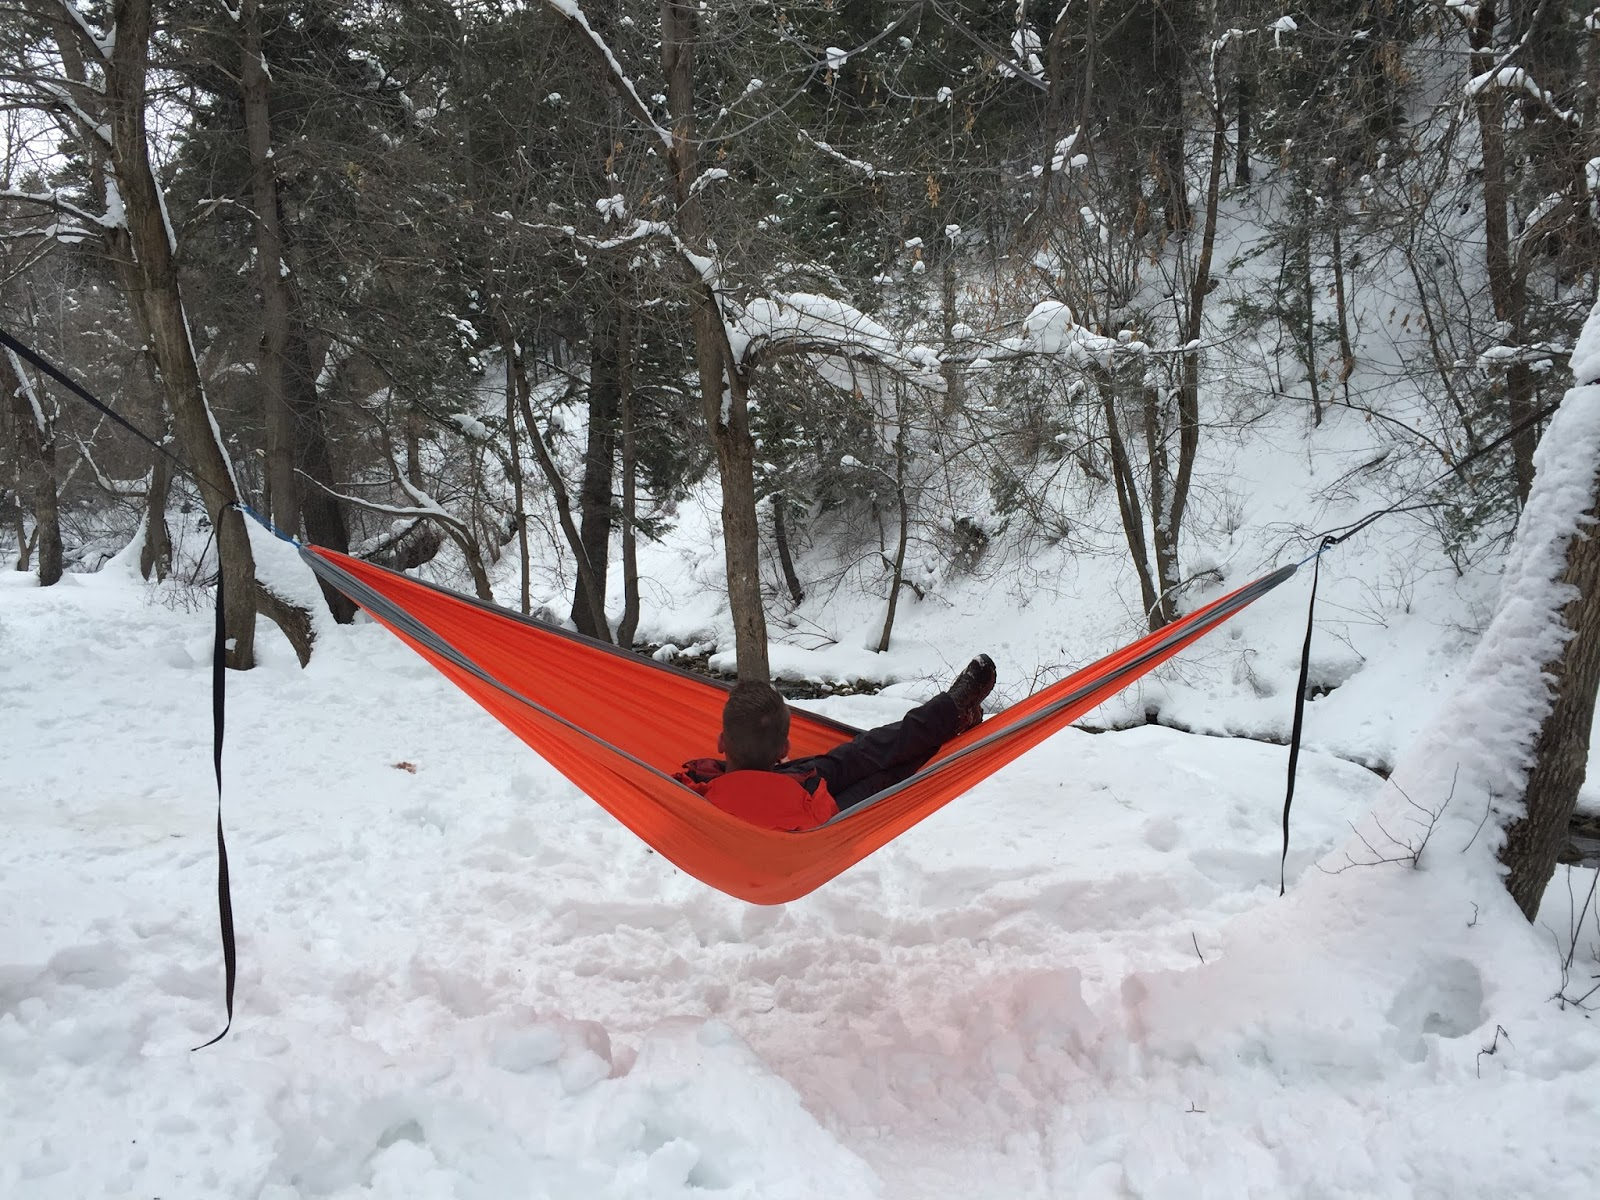 what do you think about when you hear the word hammock  it u0027s probably coupled with words like solitude relaxing and  fort  hammocks seem to be on the     wildhorn outfitters outpost 2 hammock review  u2013 backcountry exposure  rh   backcountryexposure me